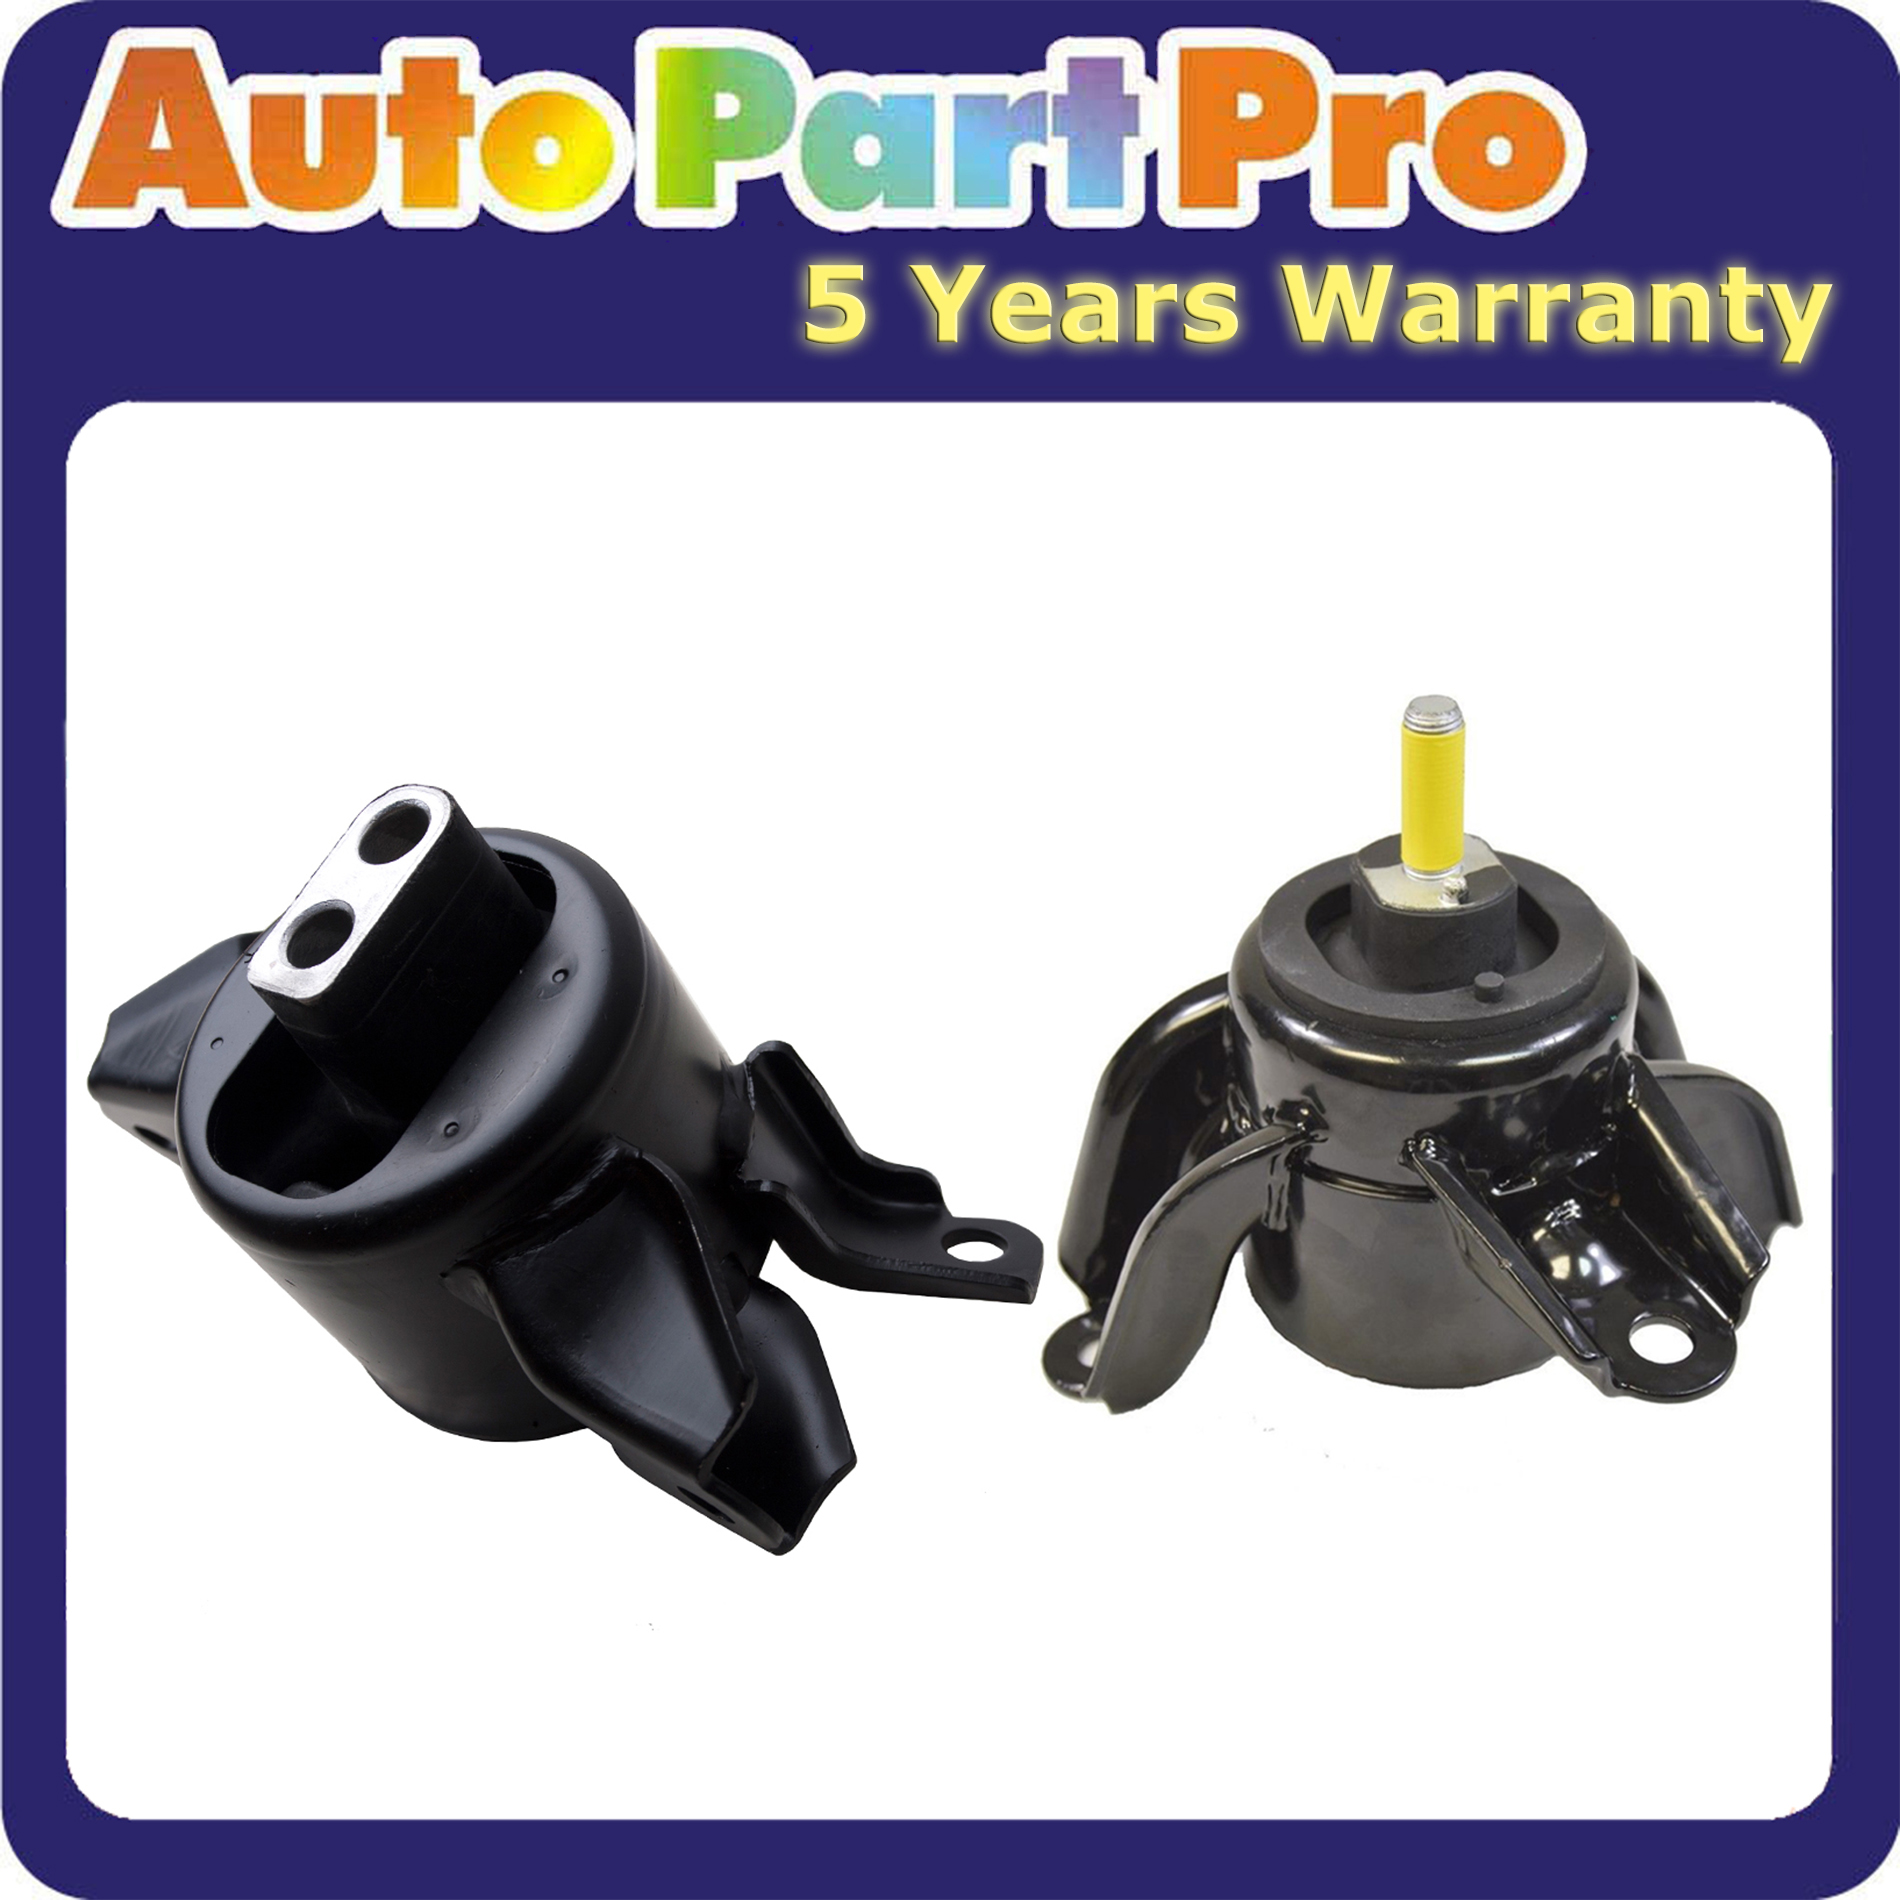 Engine /& Transmission Mount for 2012 2013-2016 Hyundai Accent 1.6L AT Trans